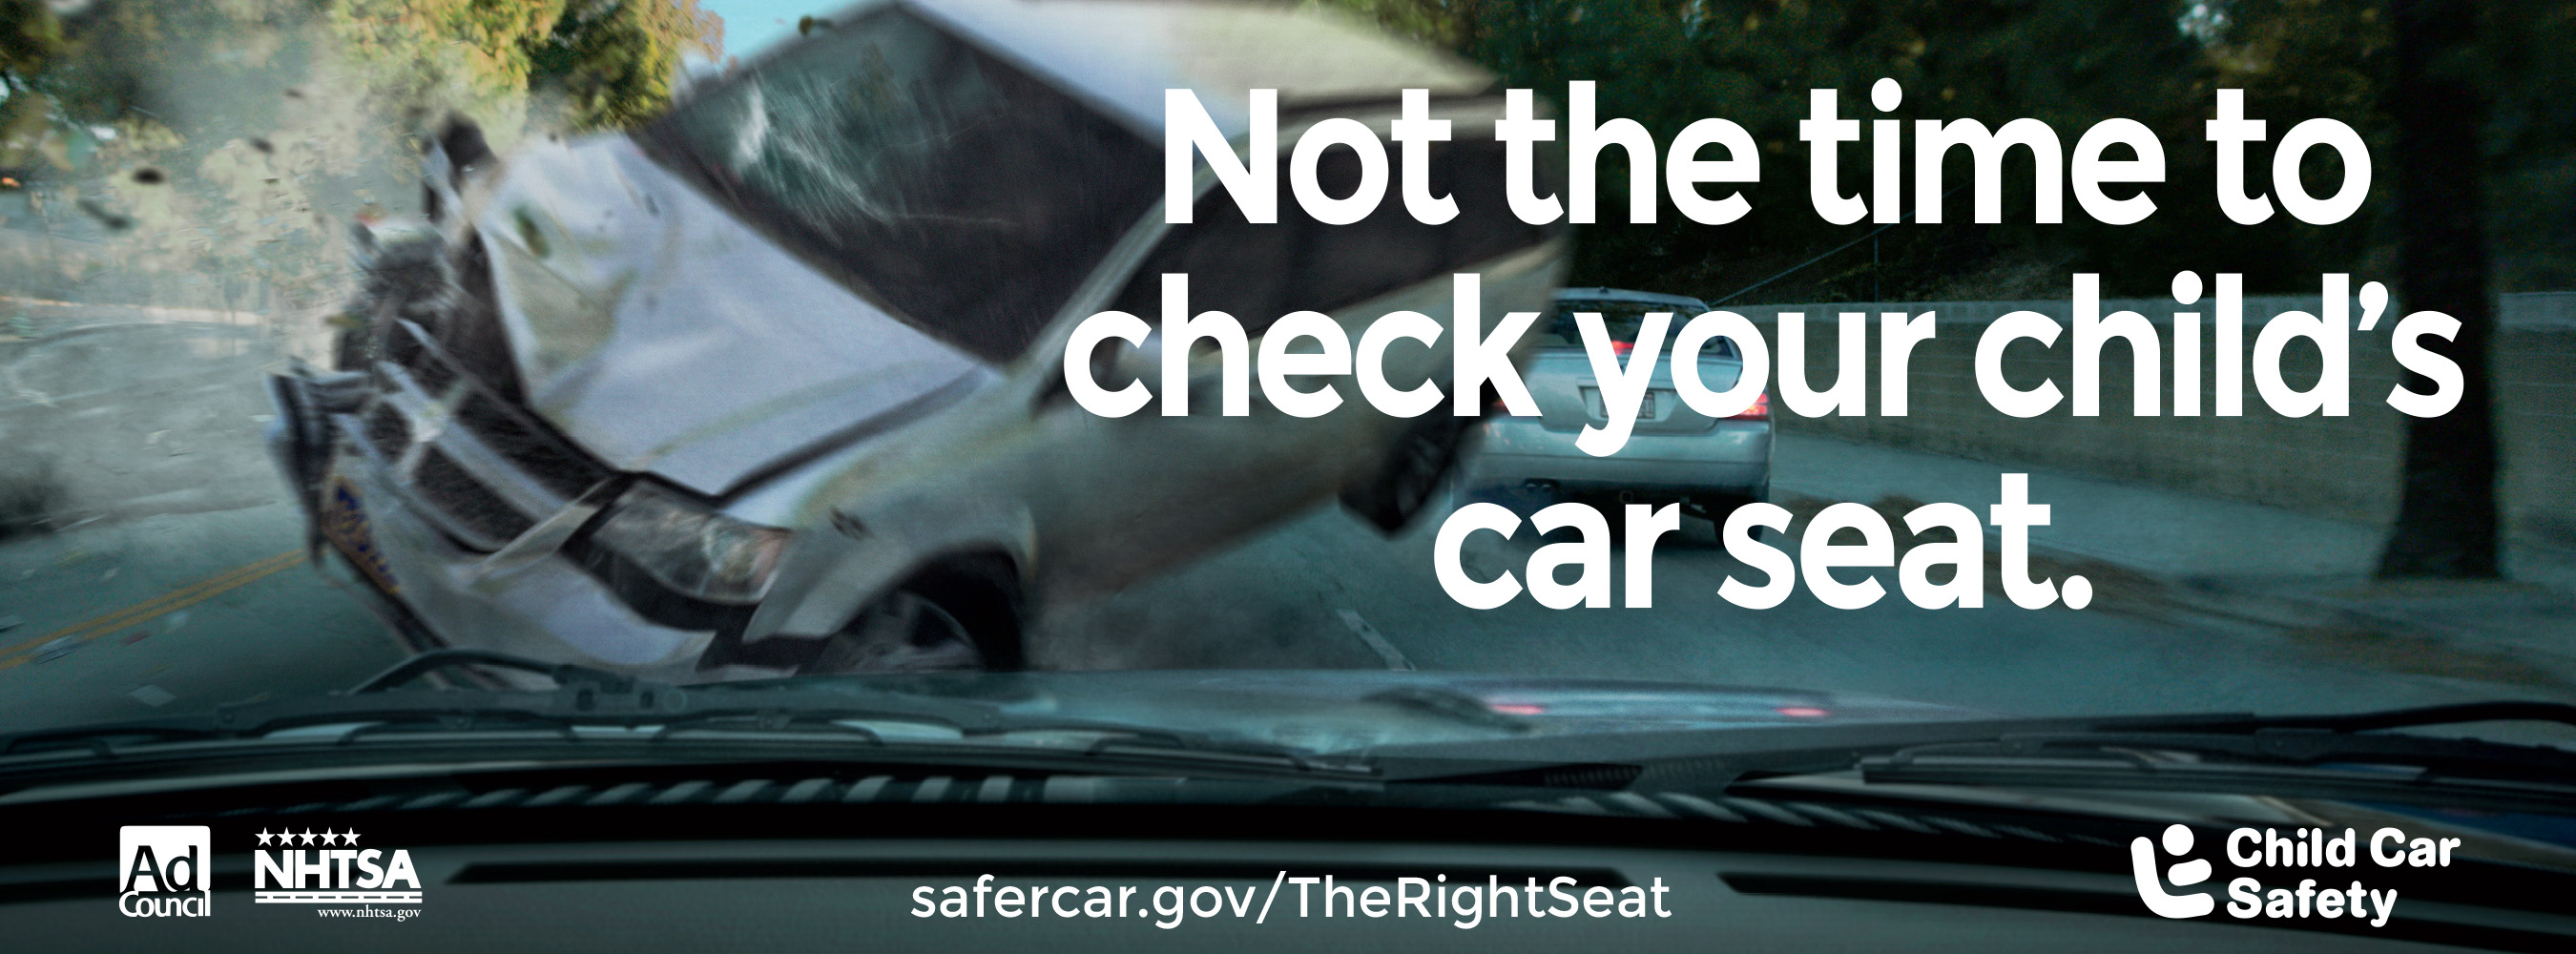 59 Percent of Car Seats Are Misused and One-Third of Children Killed